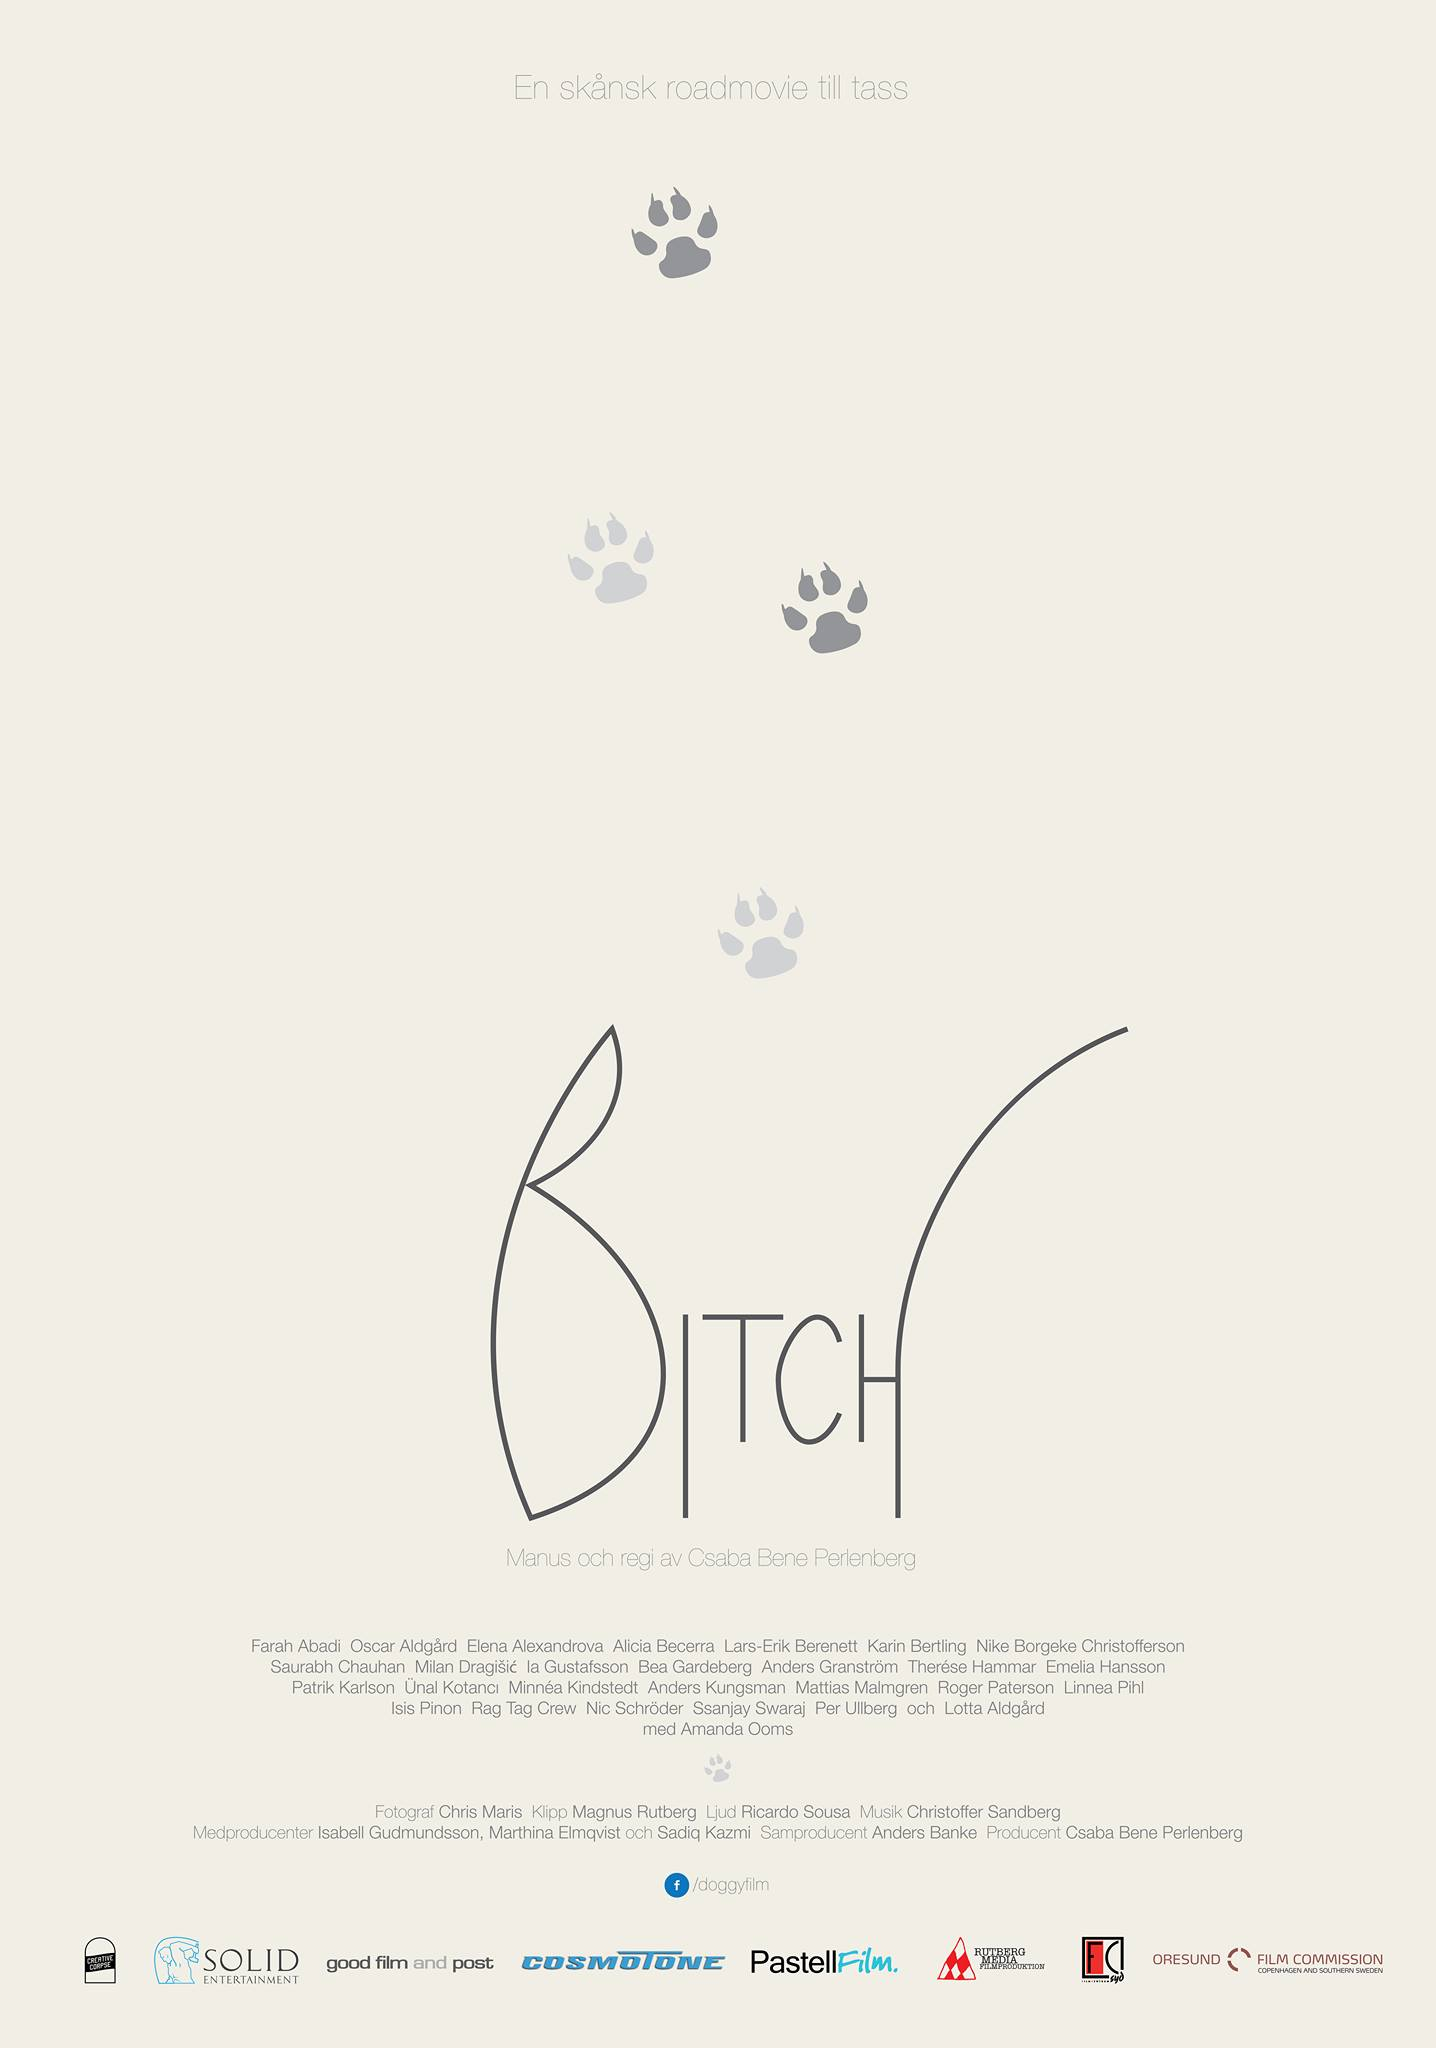 Bitch (2017) - IMDbPro